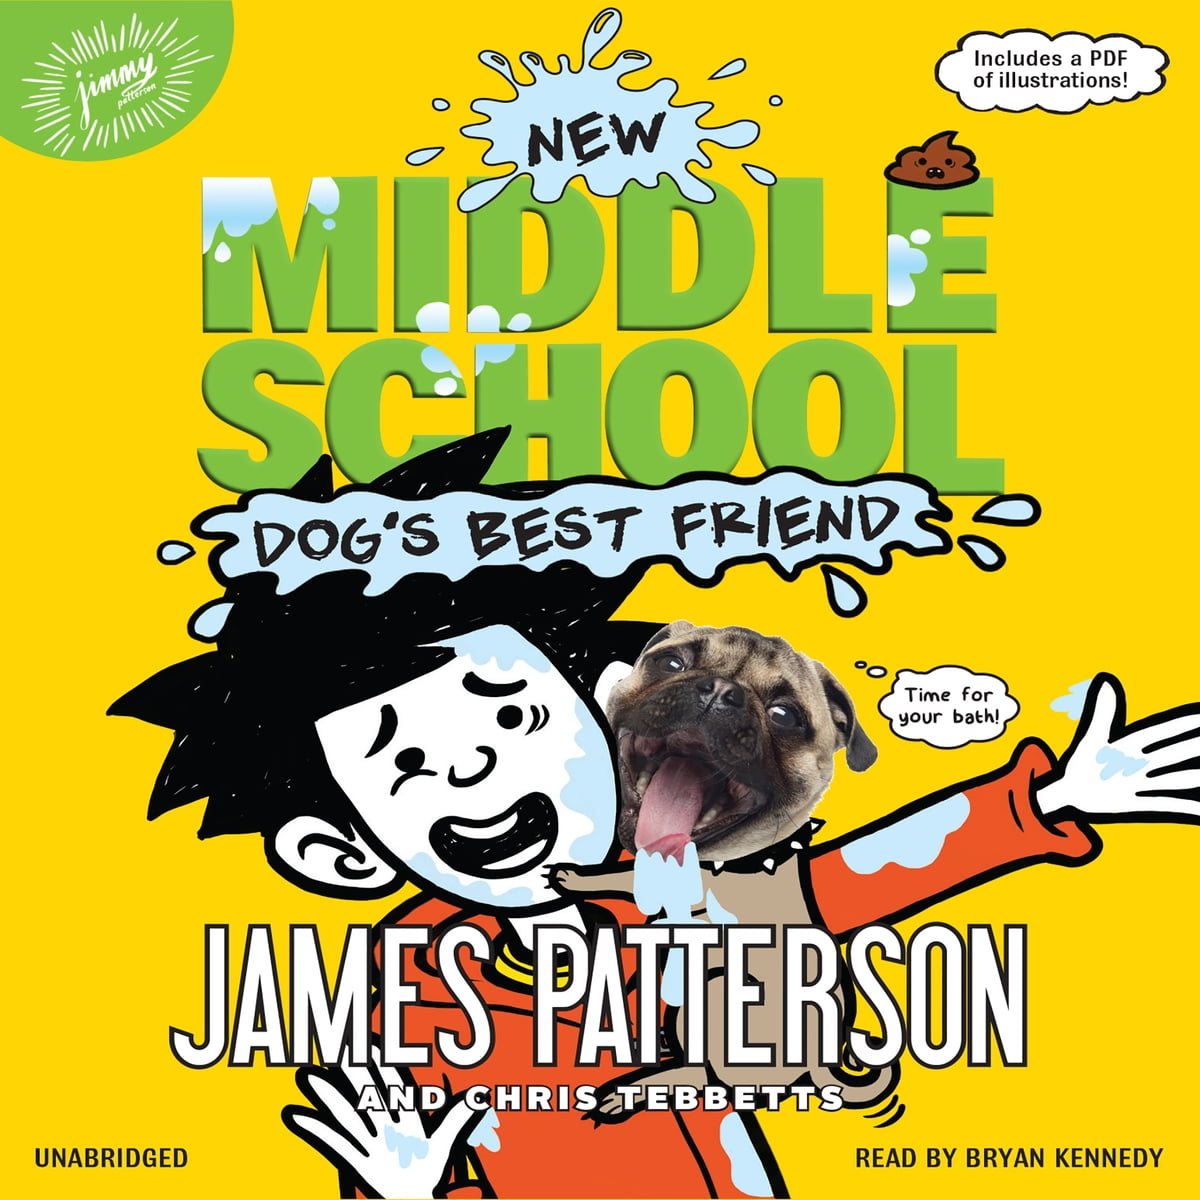 Patterson the pdf experiment james angel